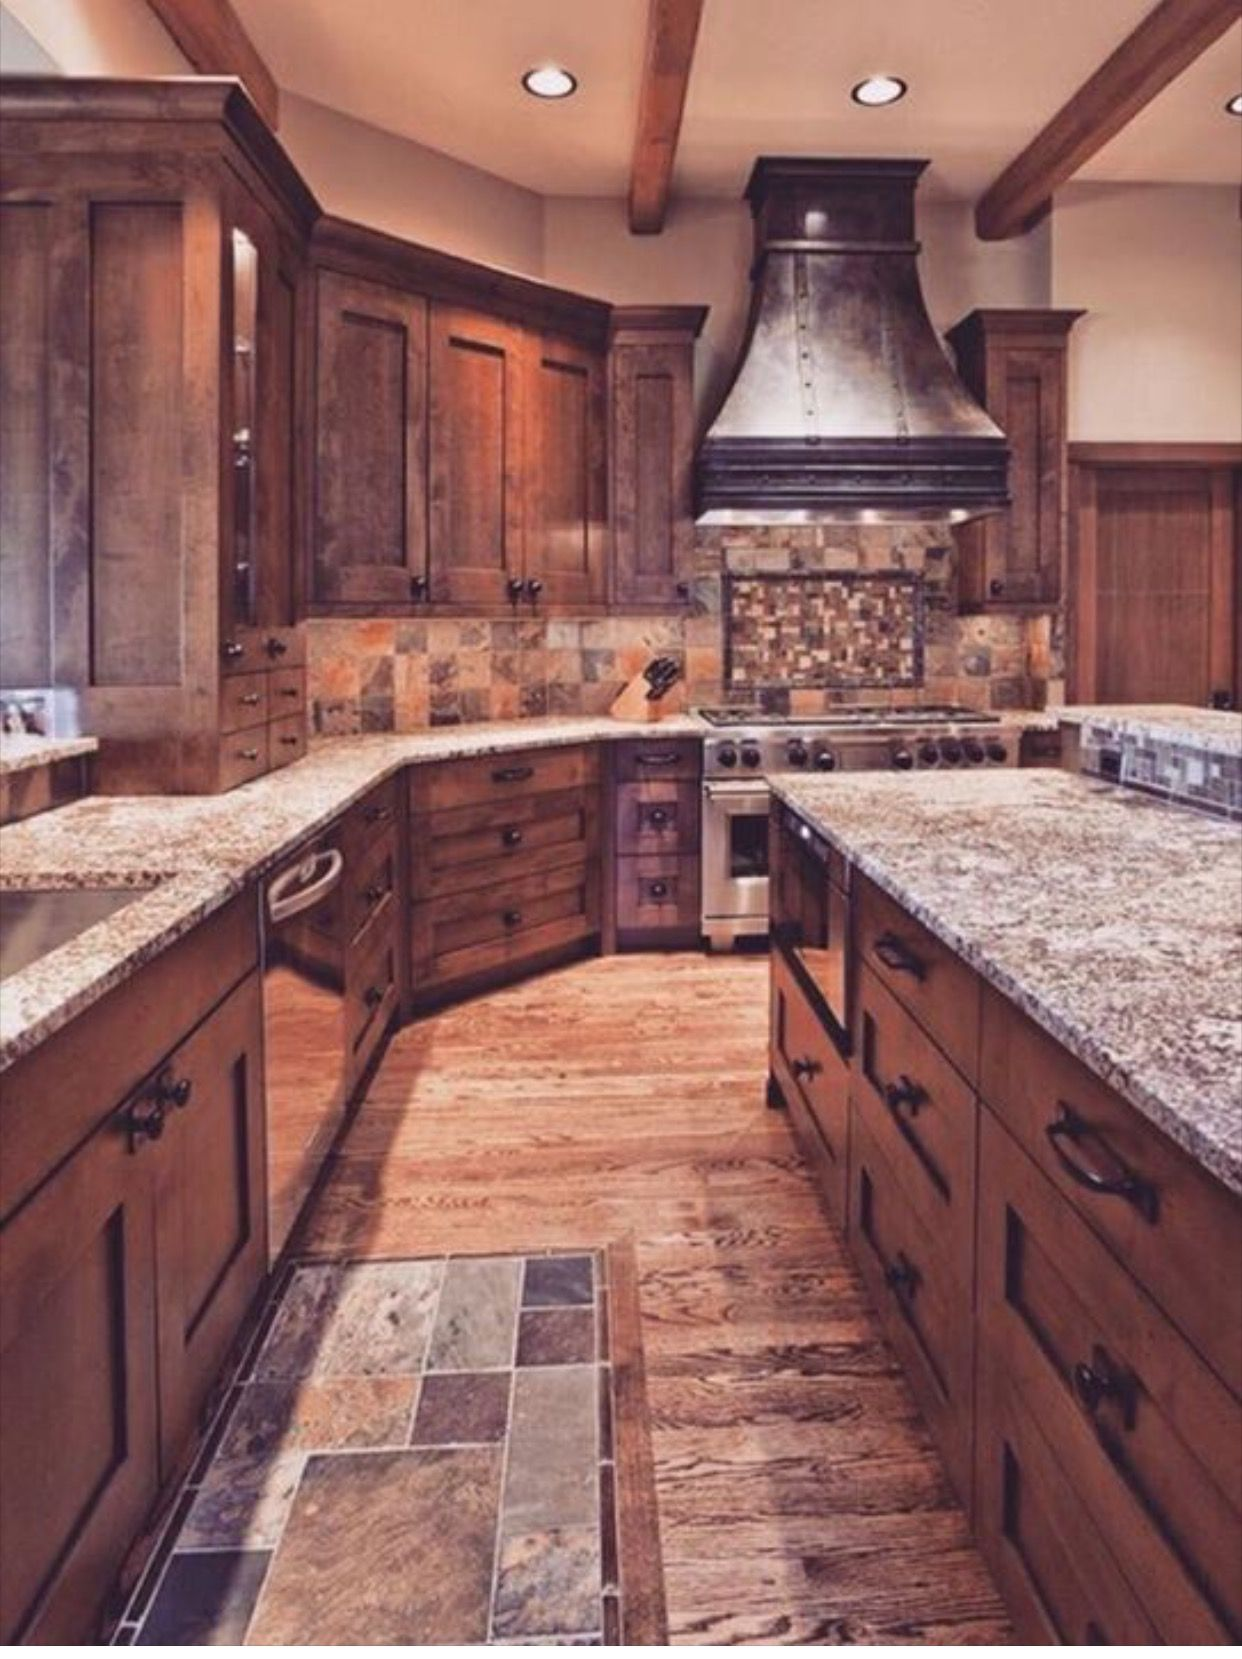 Oven Hood But Copper Rustic Kitchen Kitchen Design Beautiful Kitchens